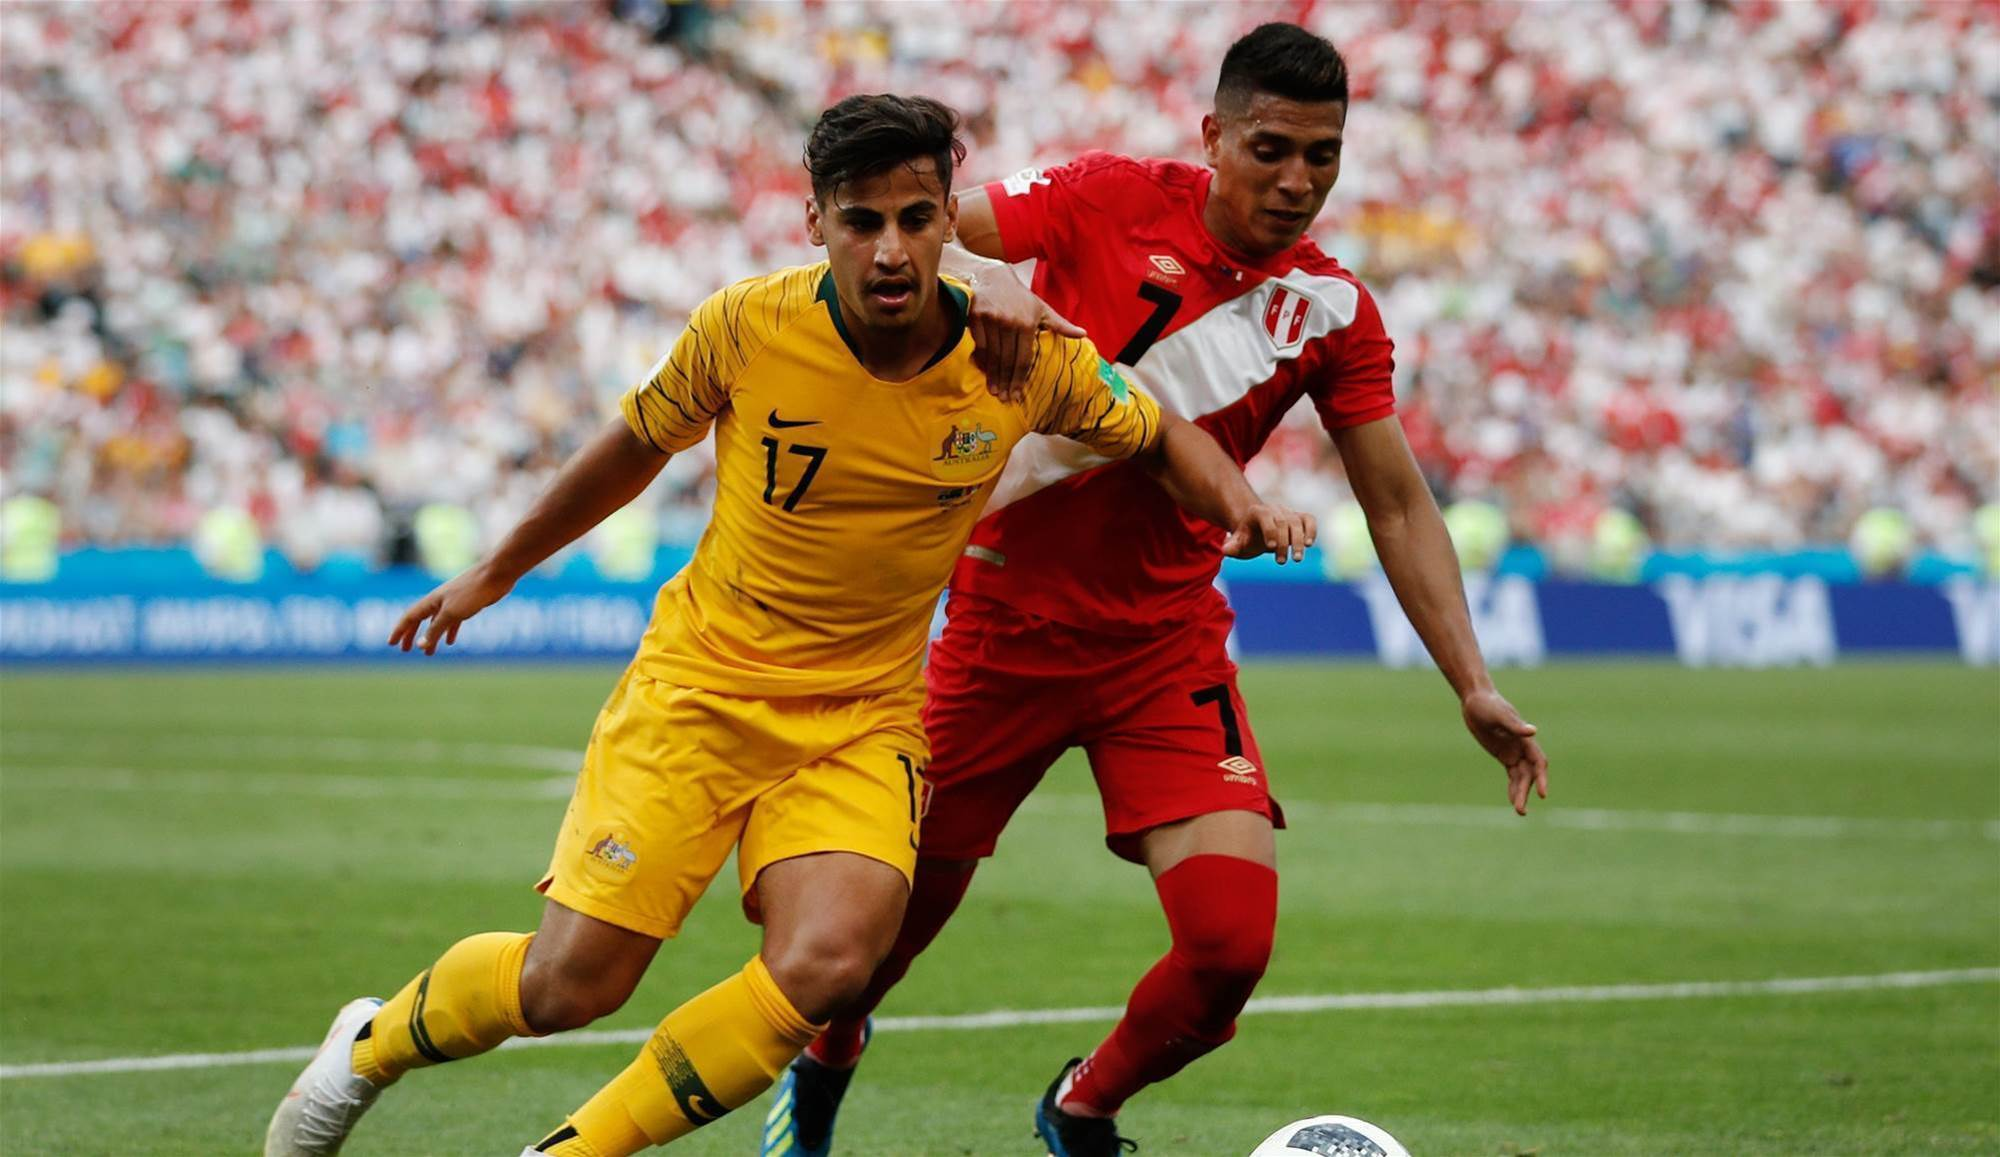 Arzani closer to Celtic loan deal - reports